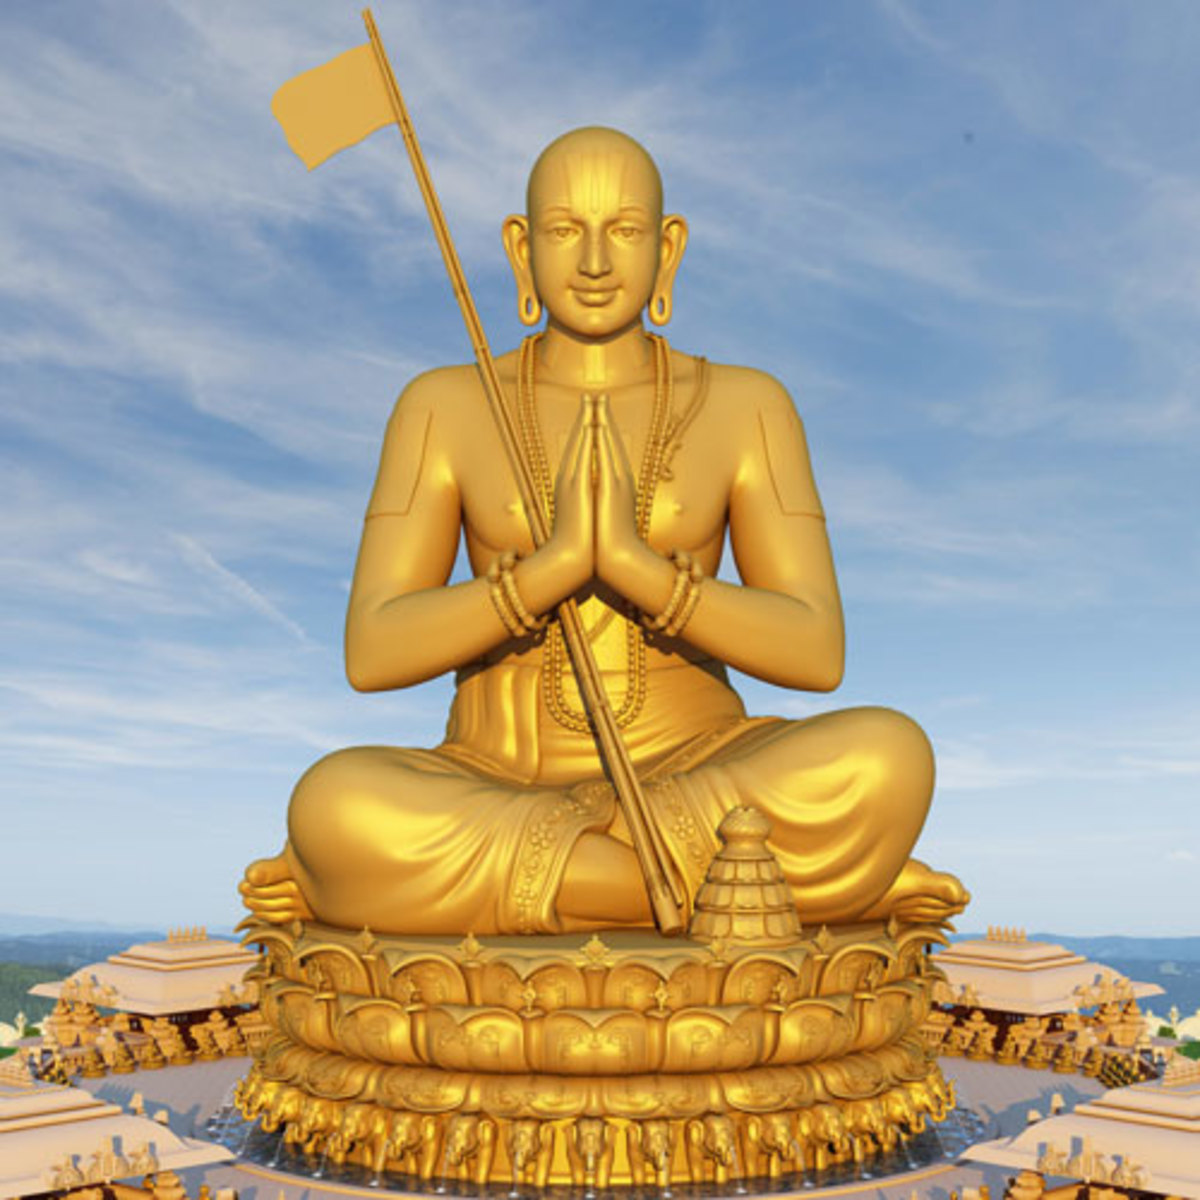 An artist's impression depicting Sri Ramanujacharya Swamy ji in dhyan pose.